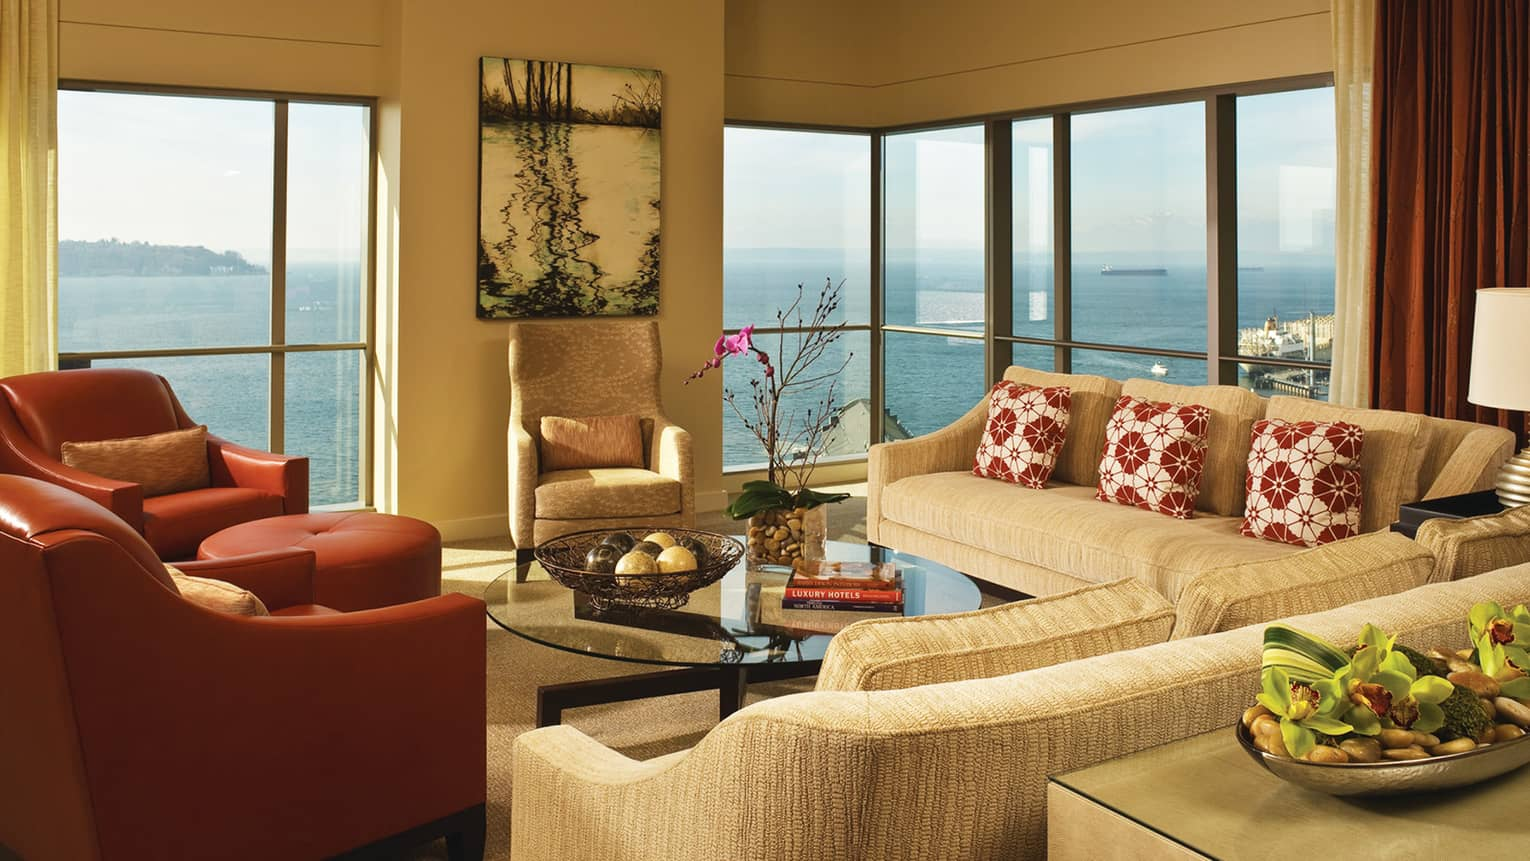 Presidential Suite sofas, red leather armchairs in front of corner windows with bay views